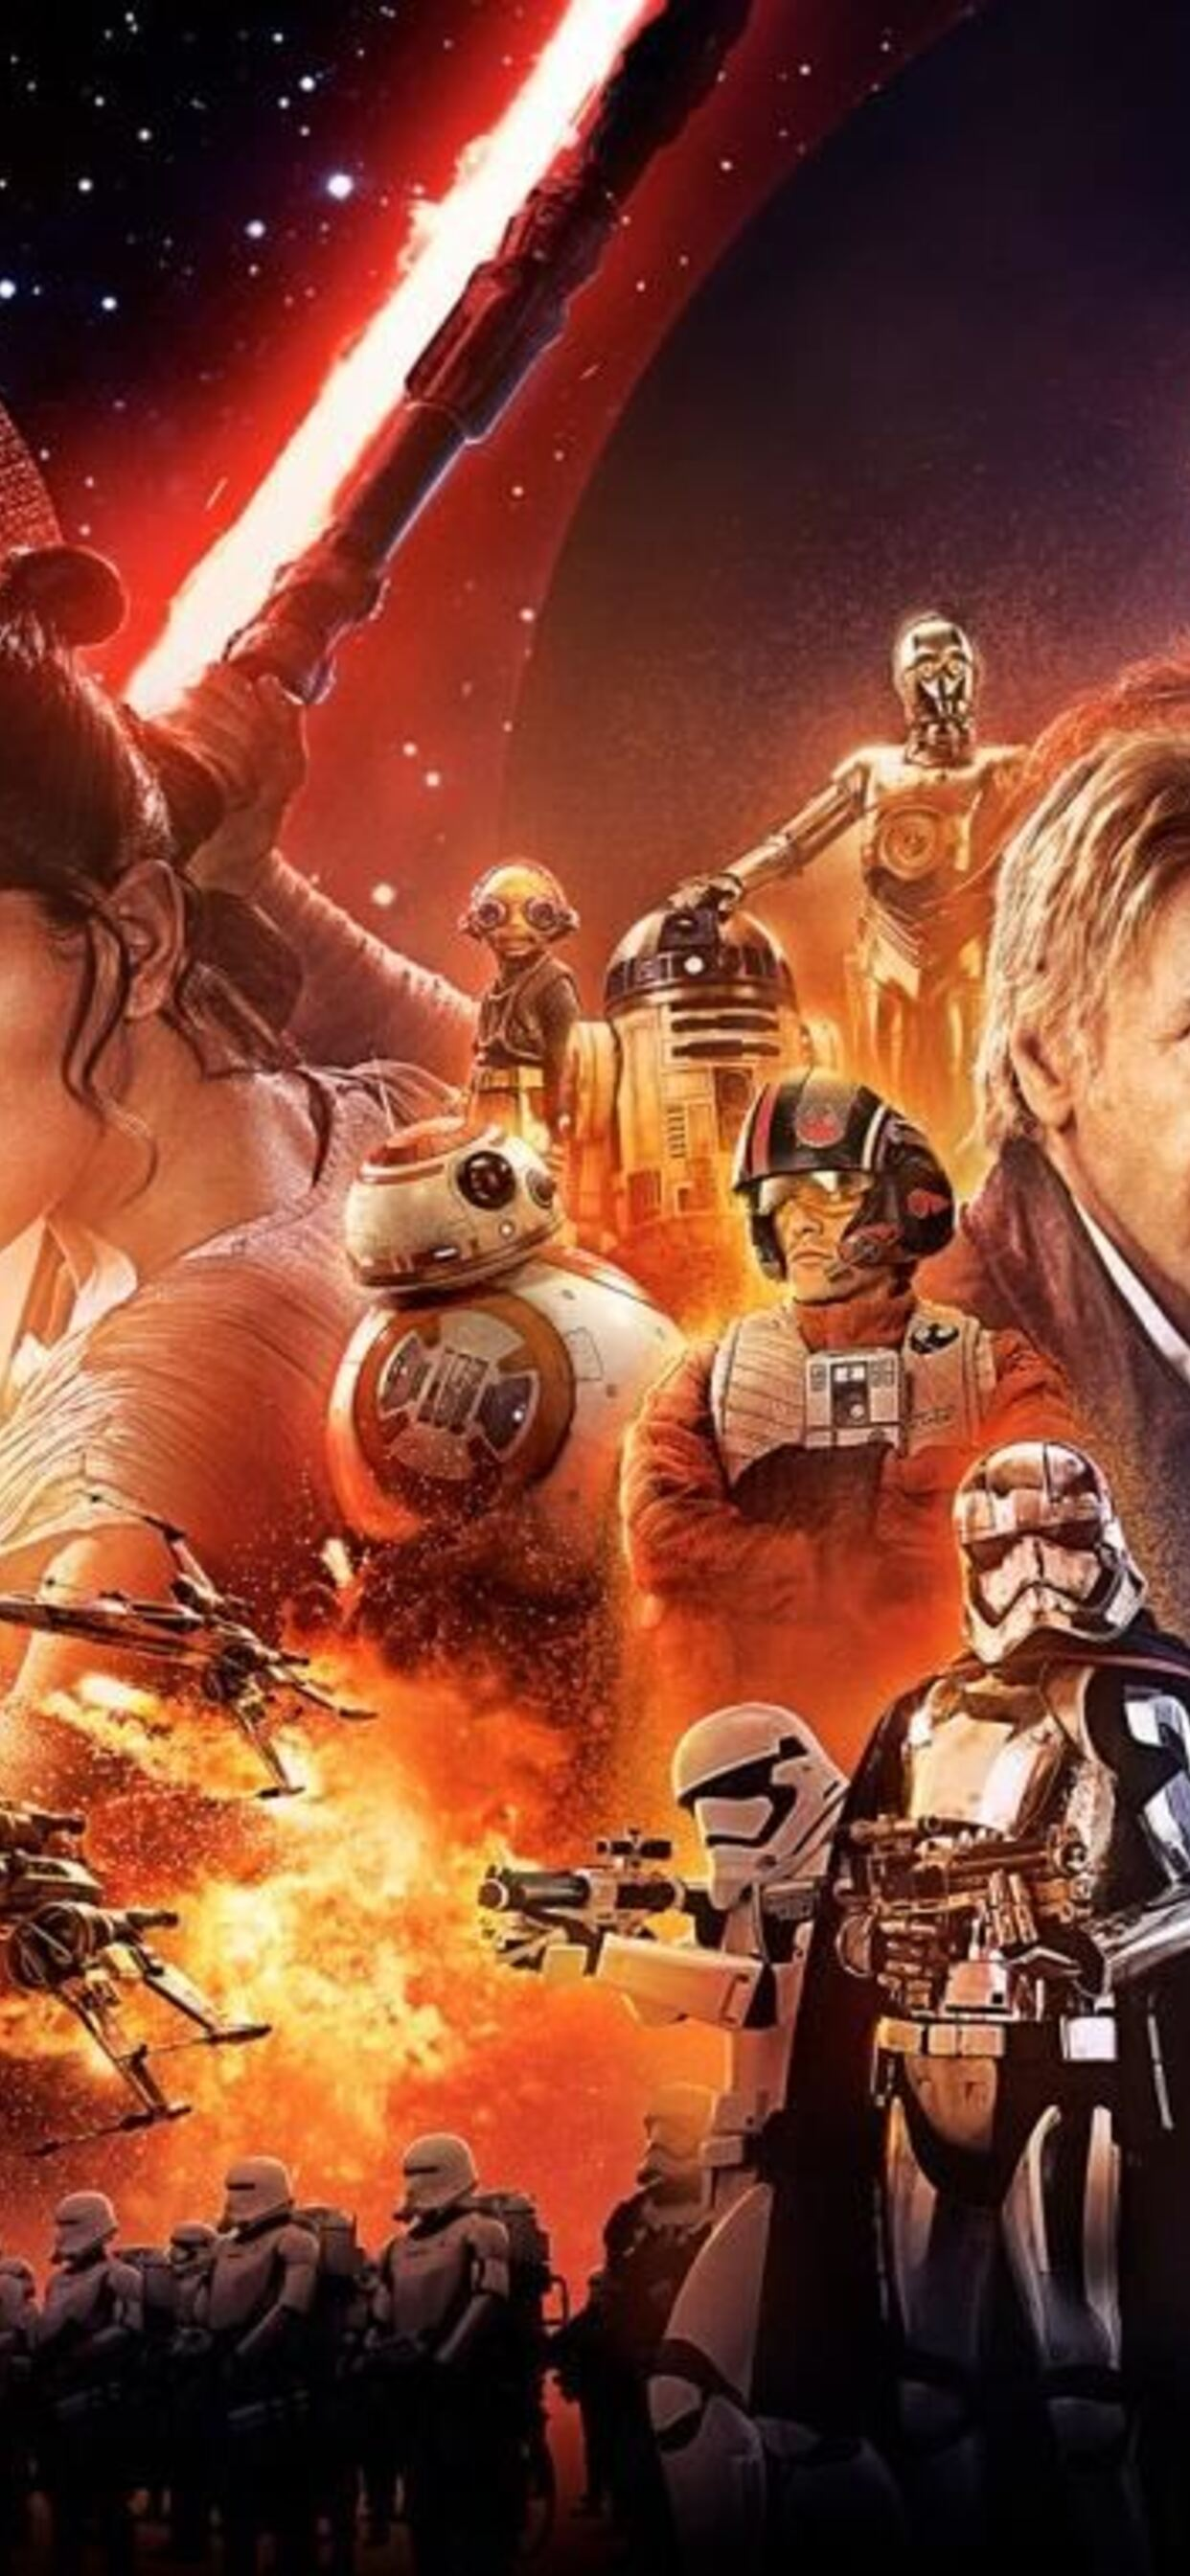 1242x2688 Star Wars The Force Awakens Poster Iphone Xs Max